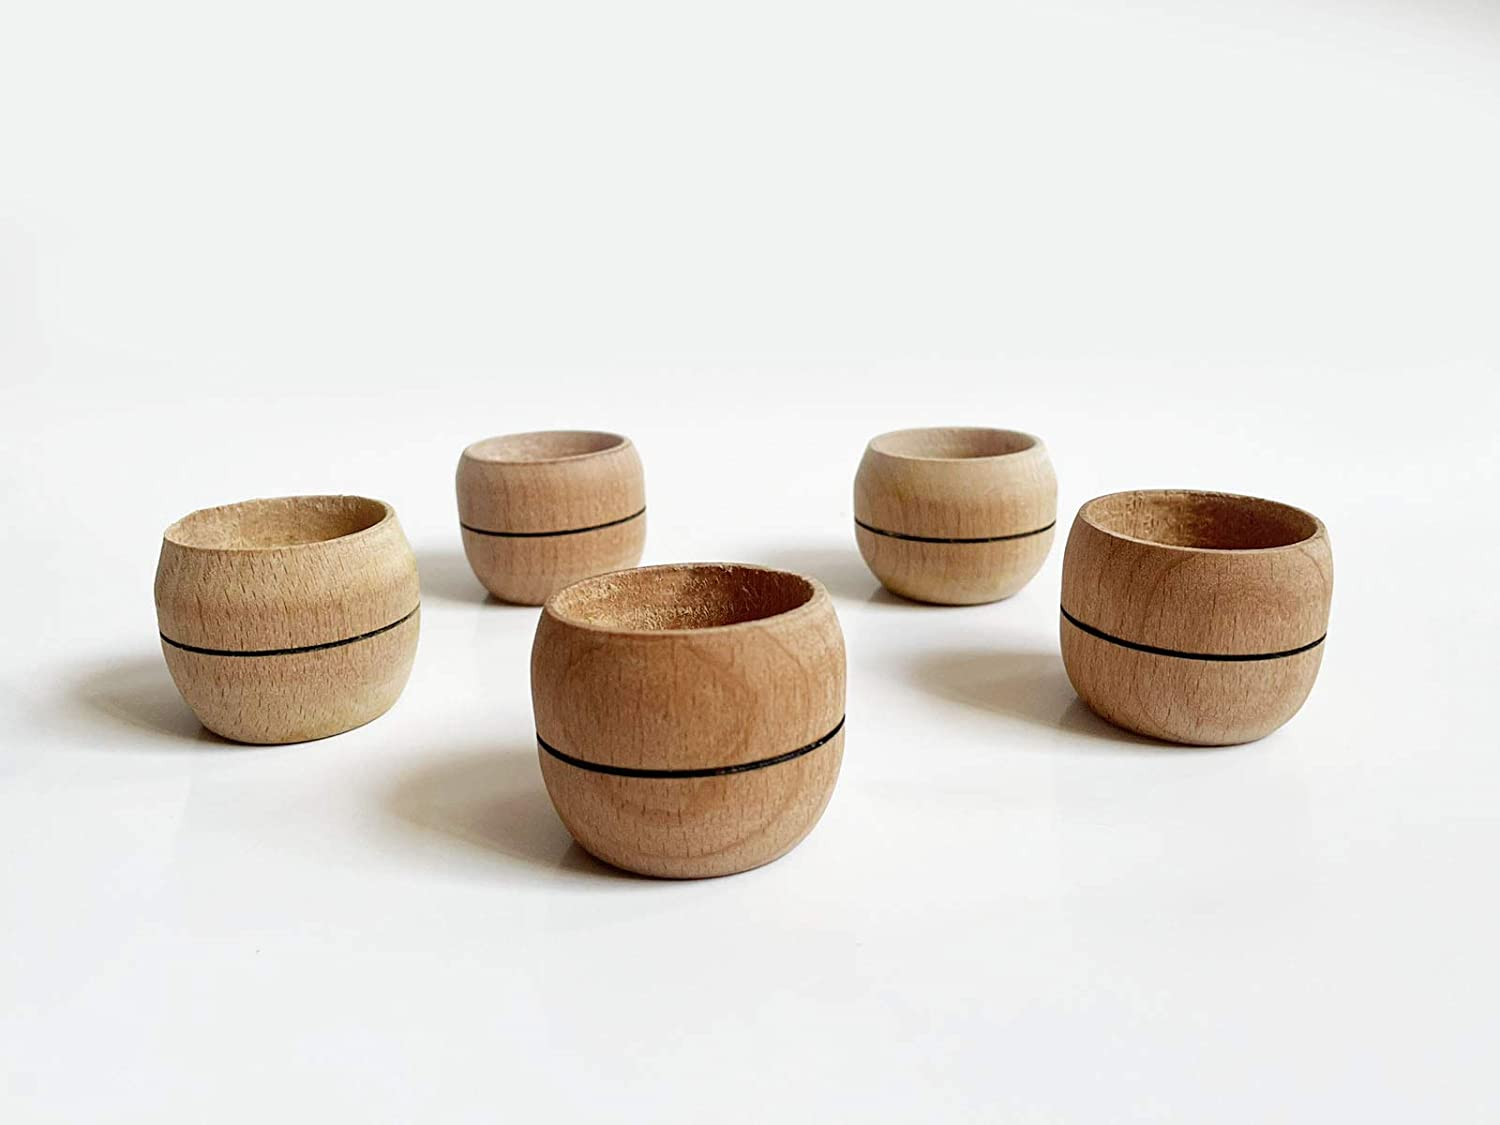 Wooden Tea Lights Candle Holder Set of 5 Handmade Candle Tea Light Holders Suitable for Home Décor, Parties, Dining Table, Receptions Gift Idea for Wedding & Housewarming Parties